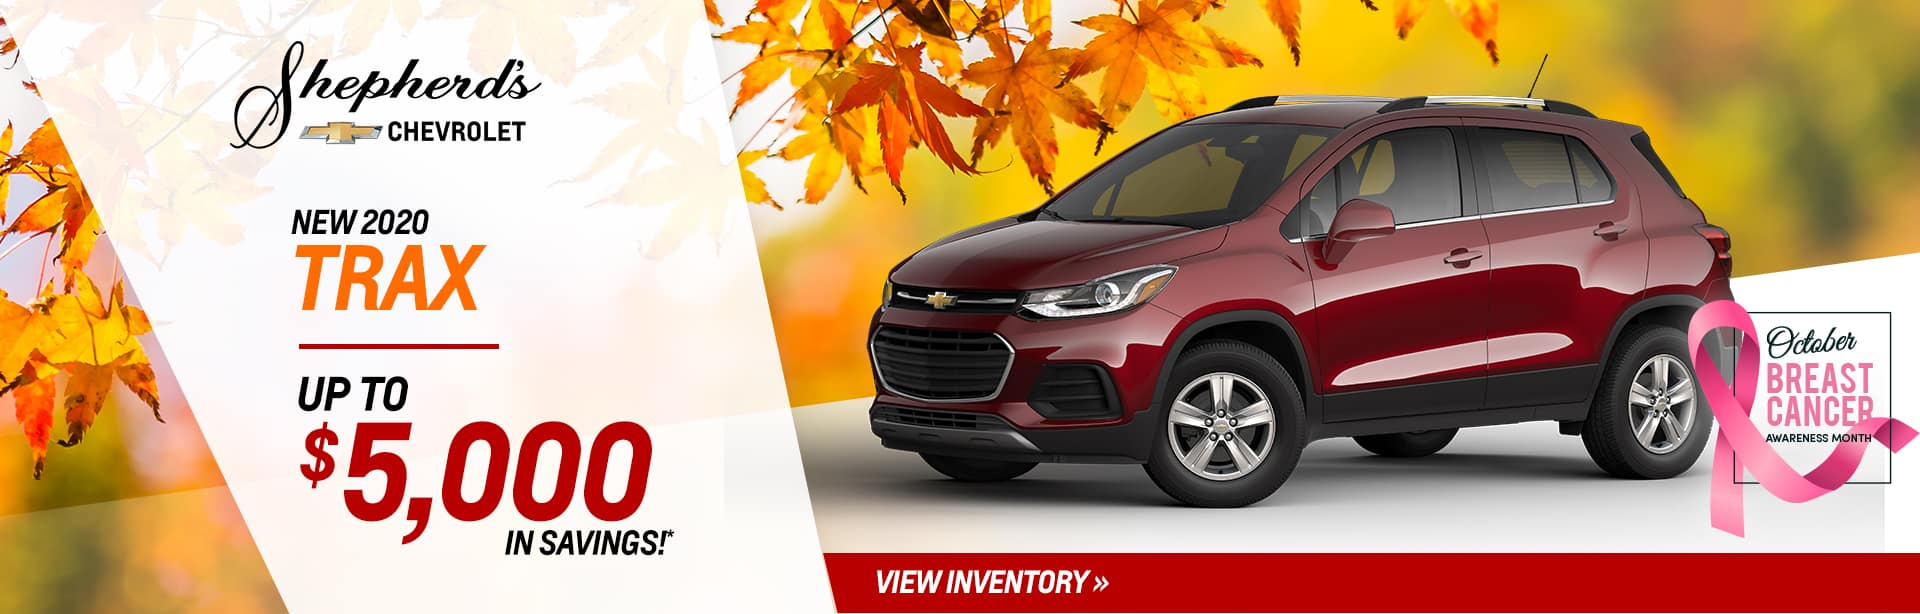 Save up to $5,000 off on a new Trax near Warsaw, Indiana